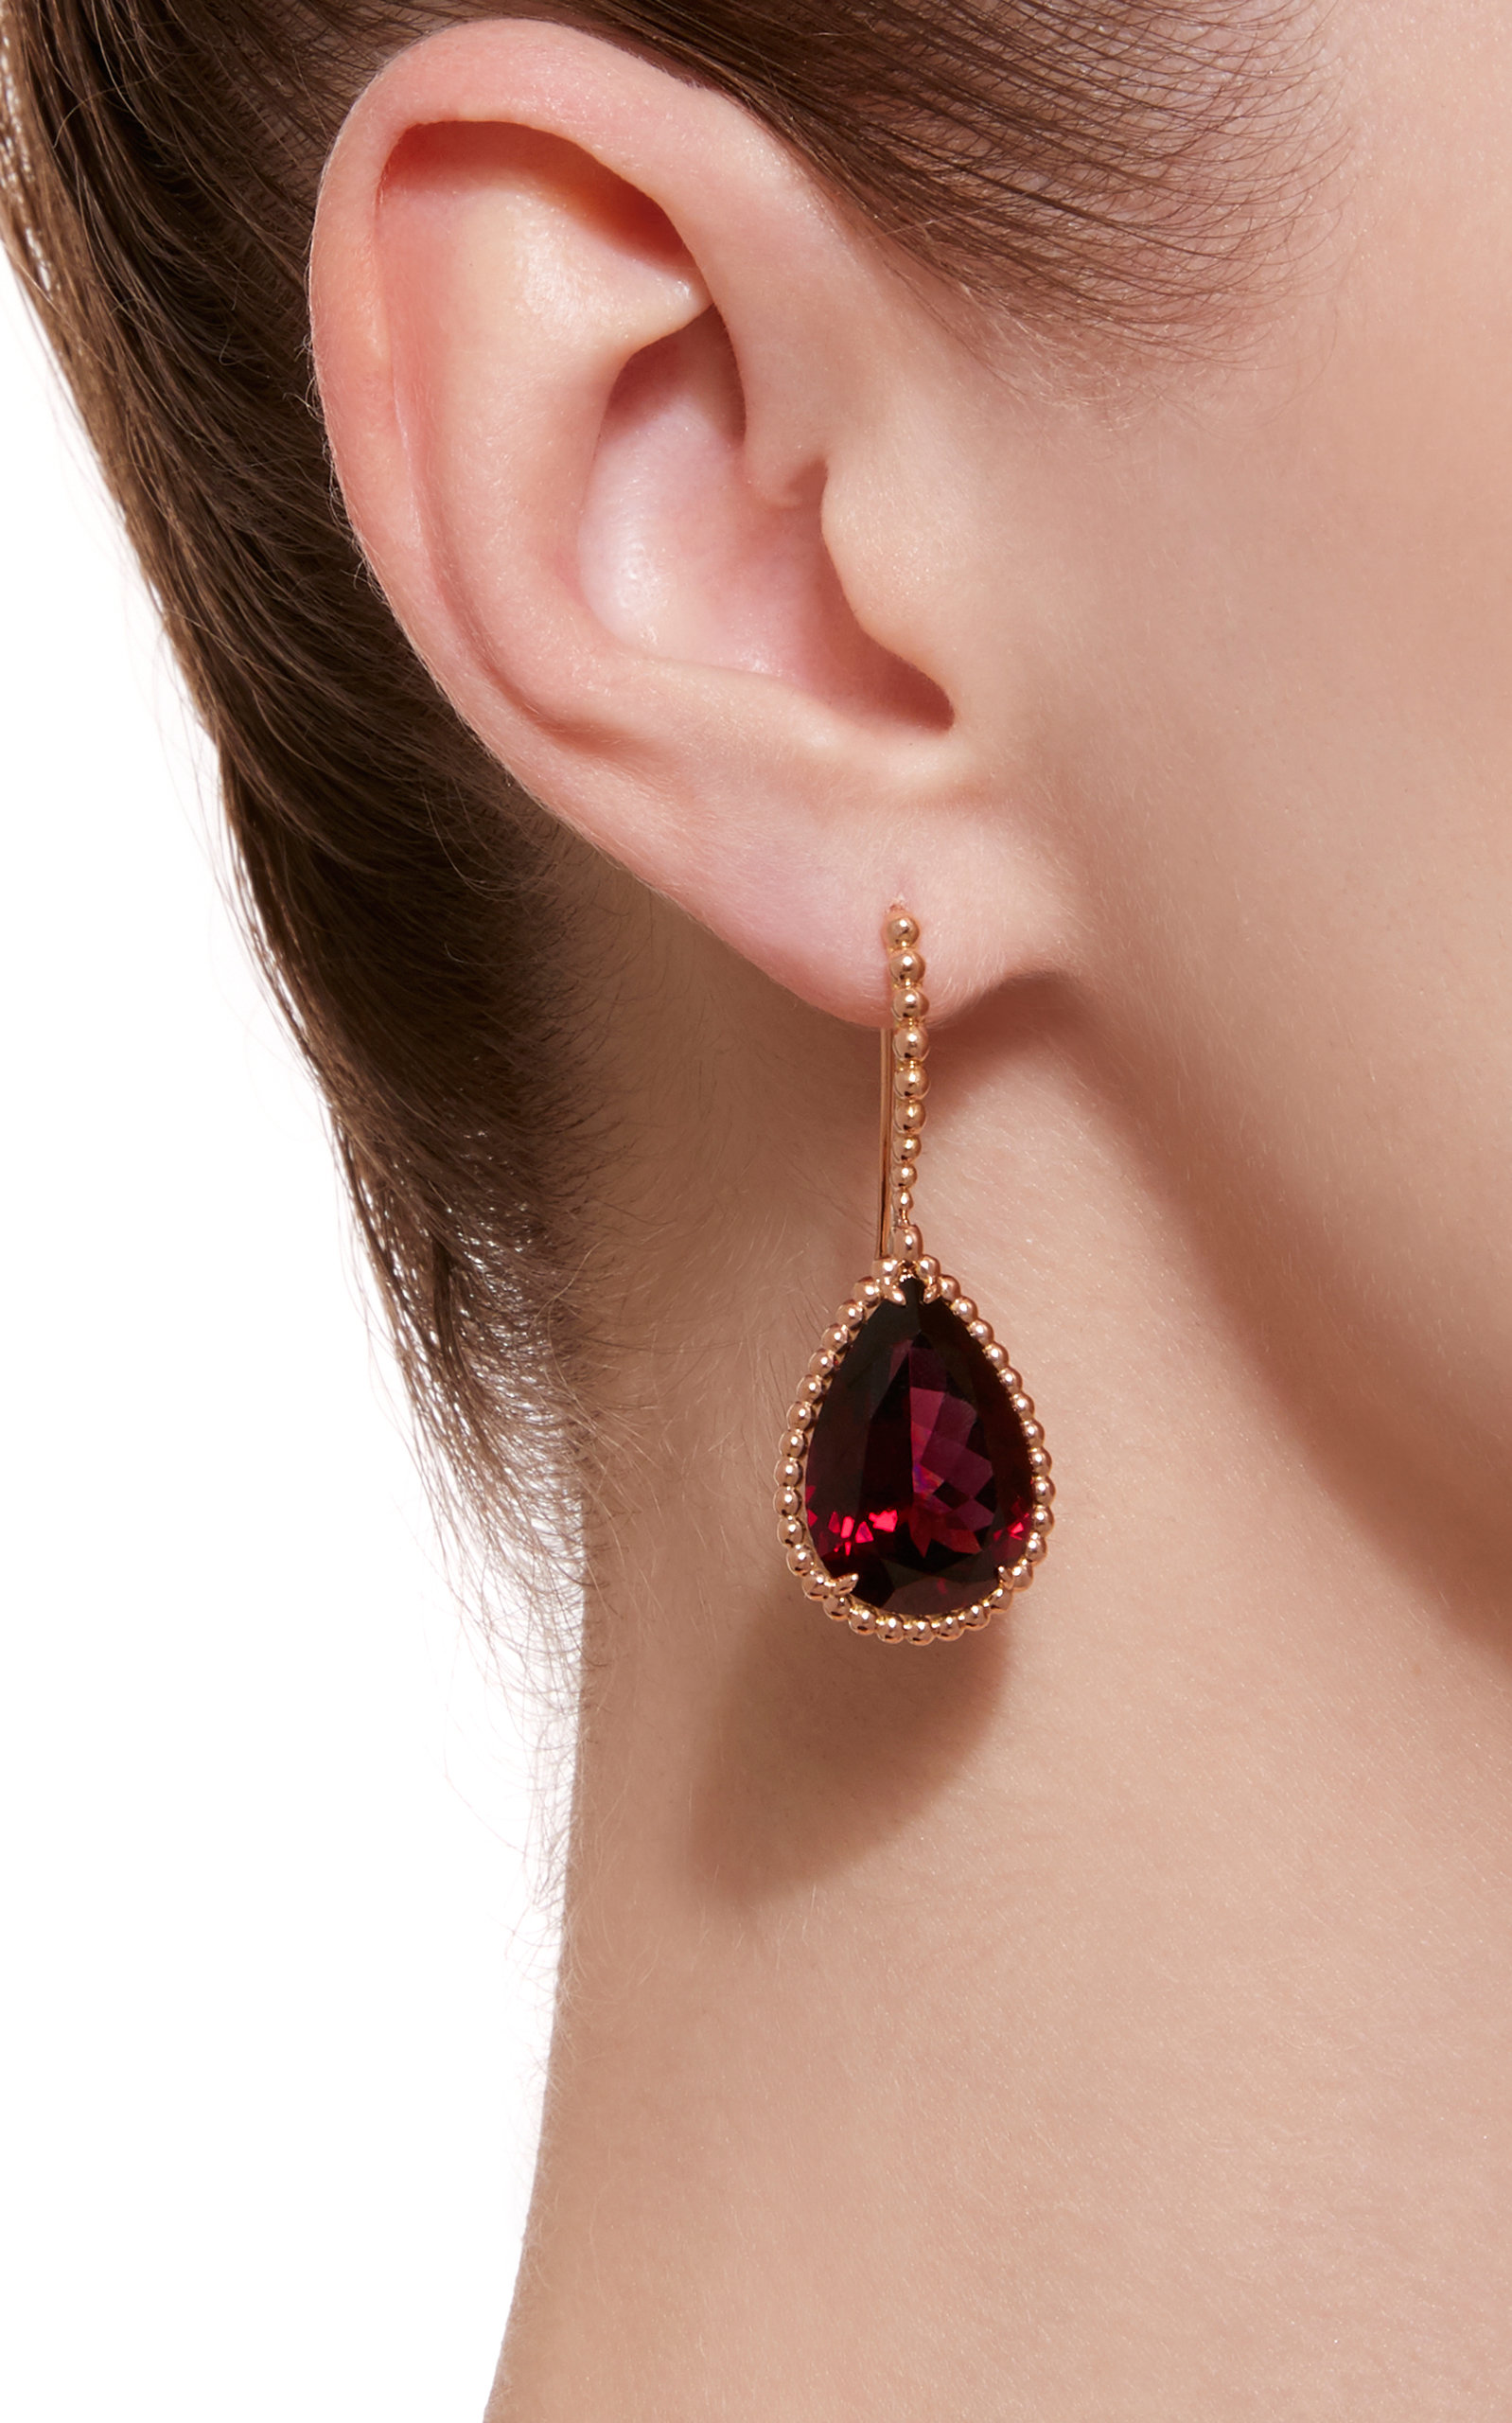 properties gemstone jewelry garnet more lc shop purple education value stone earrings meaning rhodolite